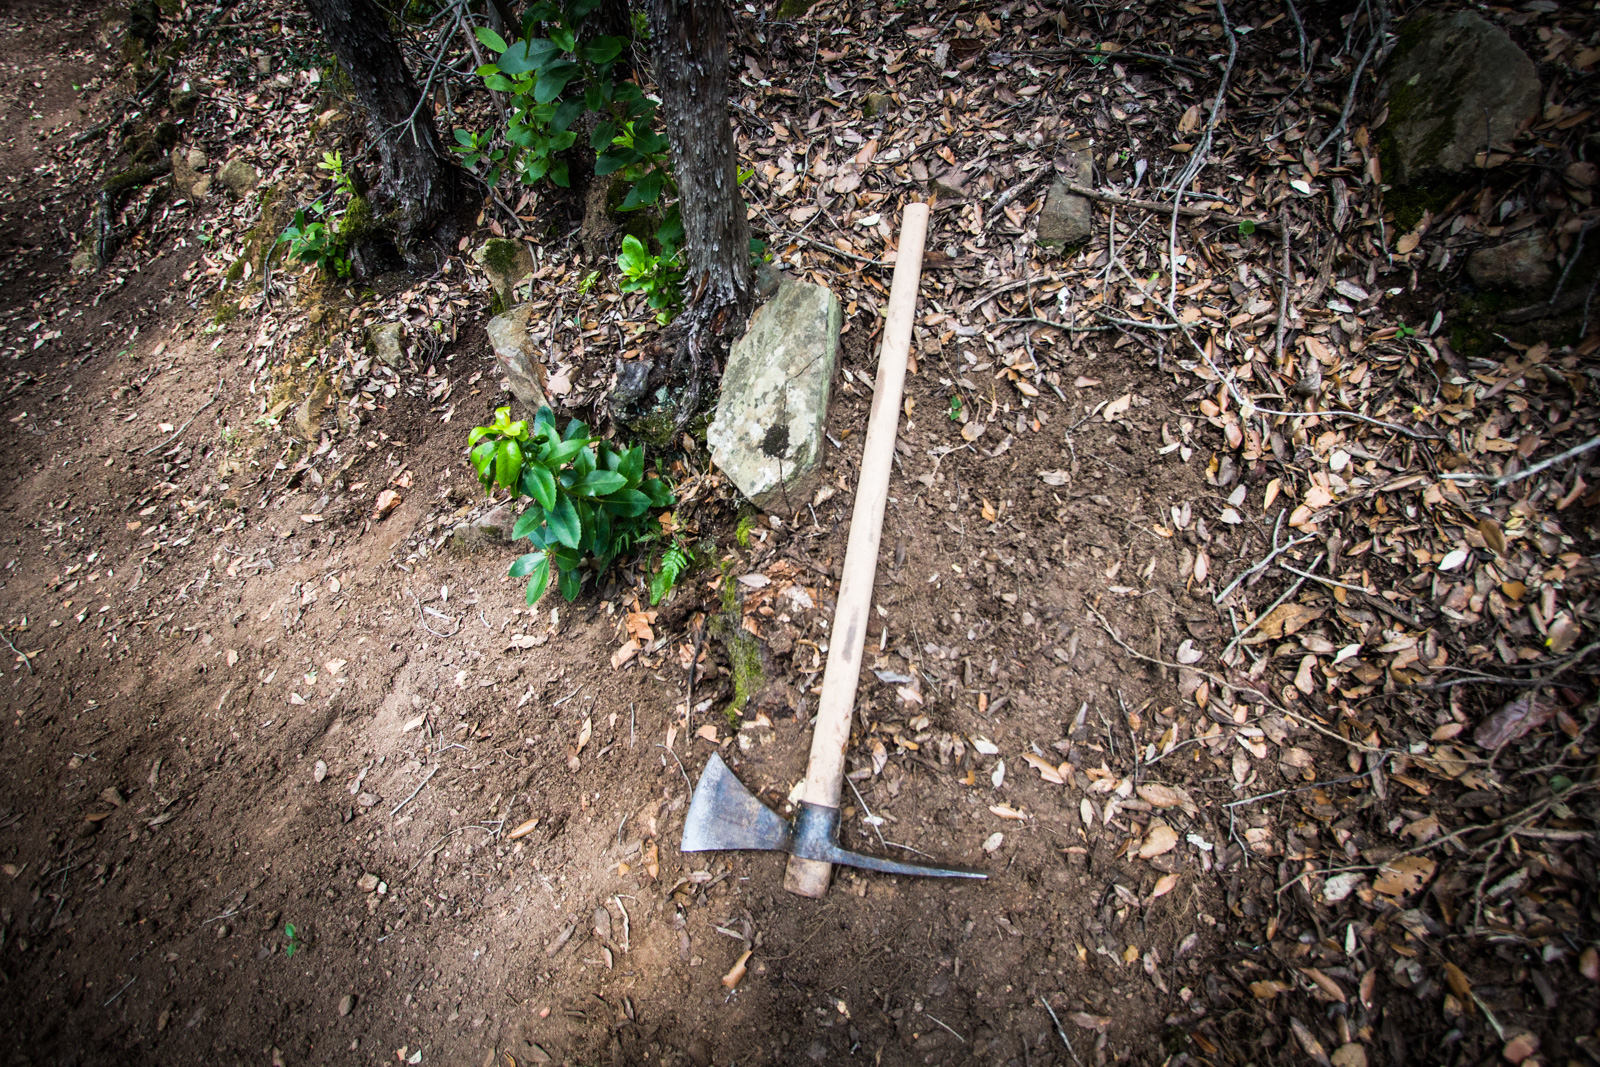 Tools need to be simple and light to carry into the trail.